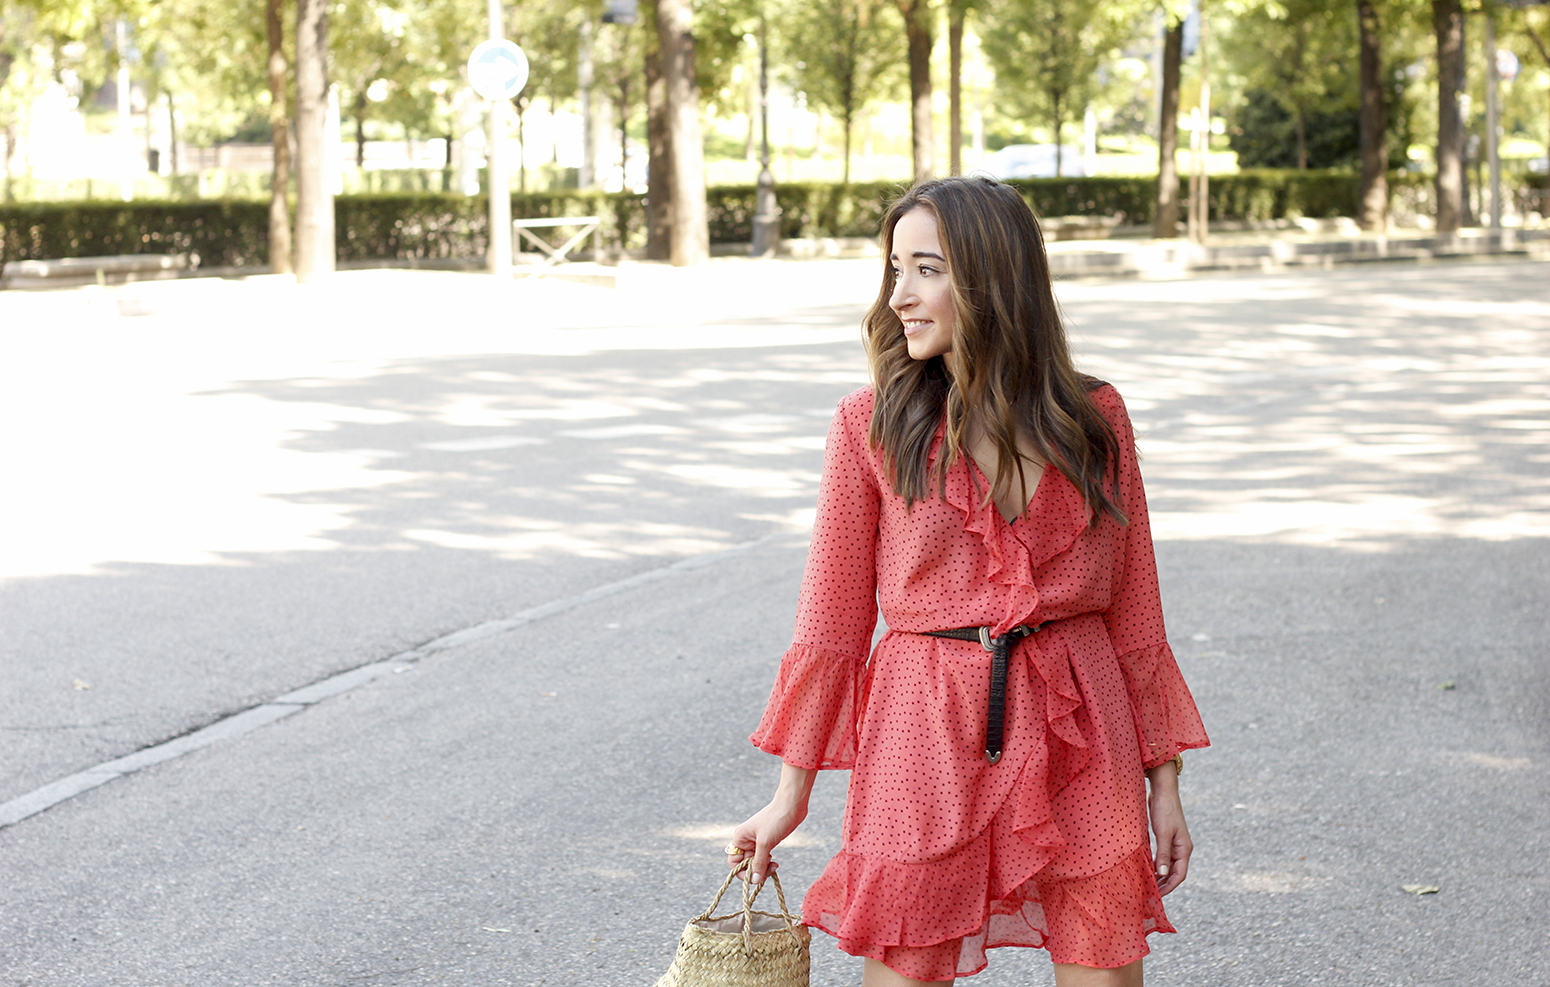 coral dress with dots and frills uterqüe black heels summer outfit style fashion10